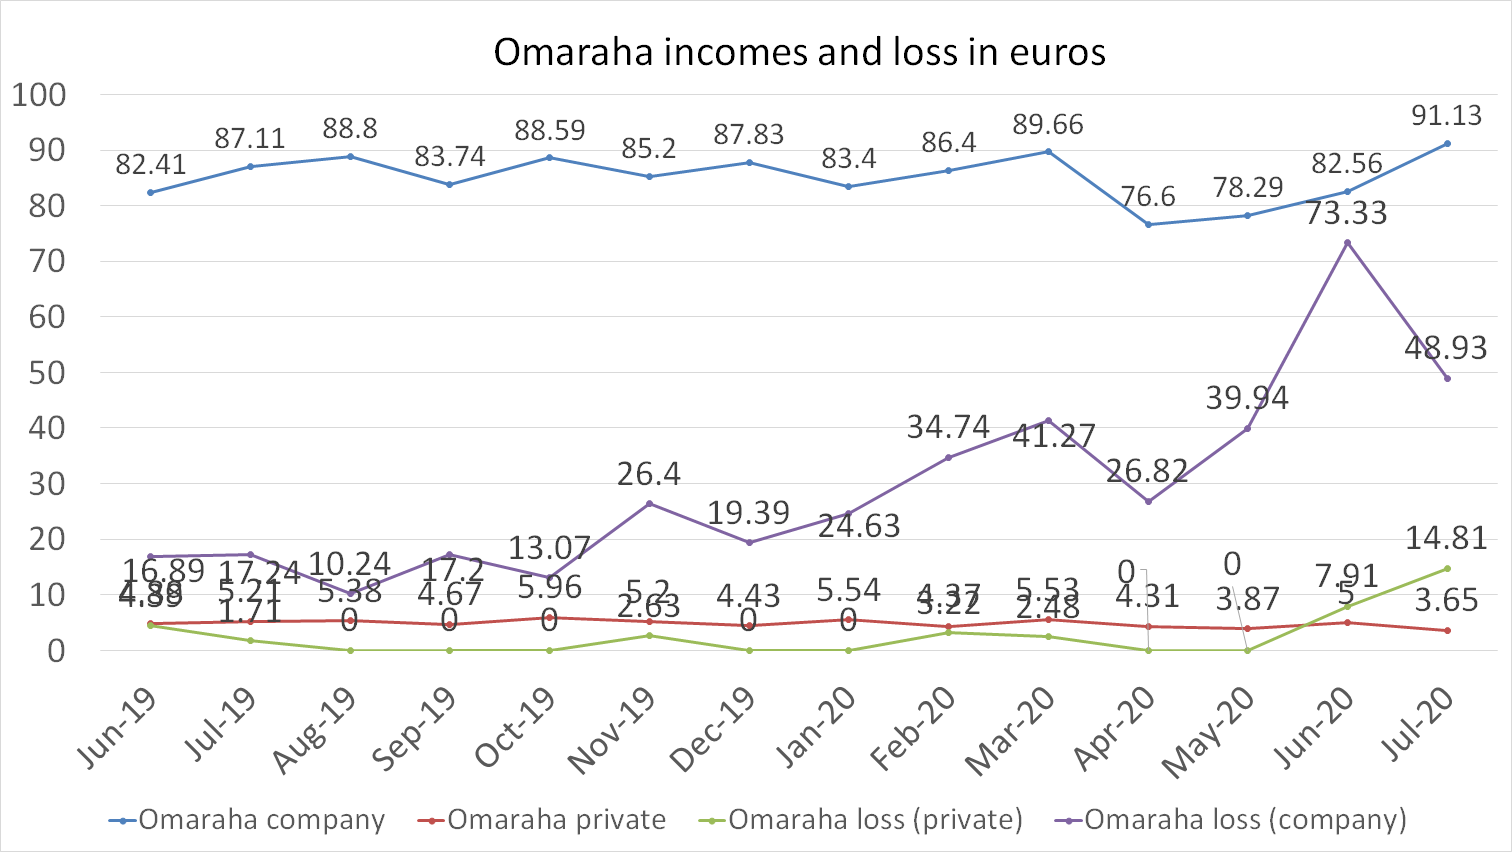 Omaraha incomes and loss in euros july 2020